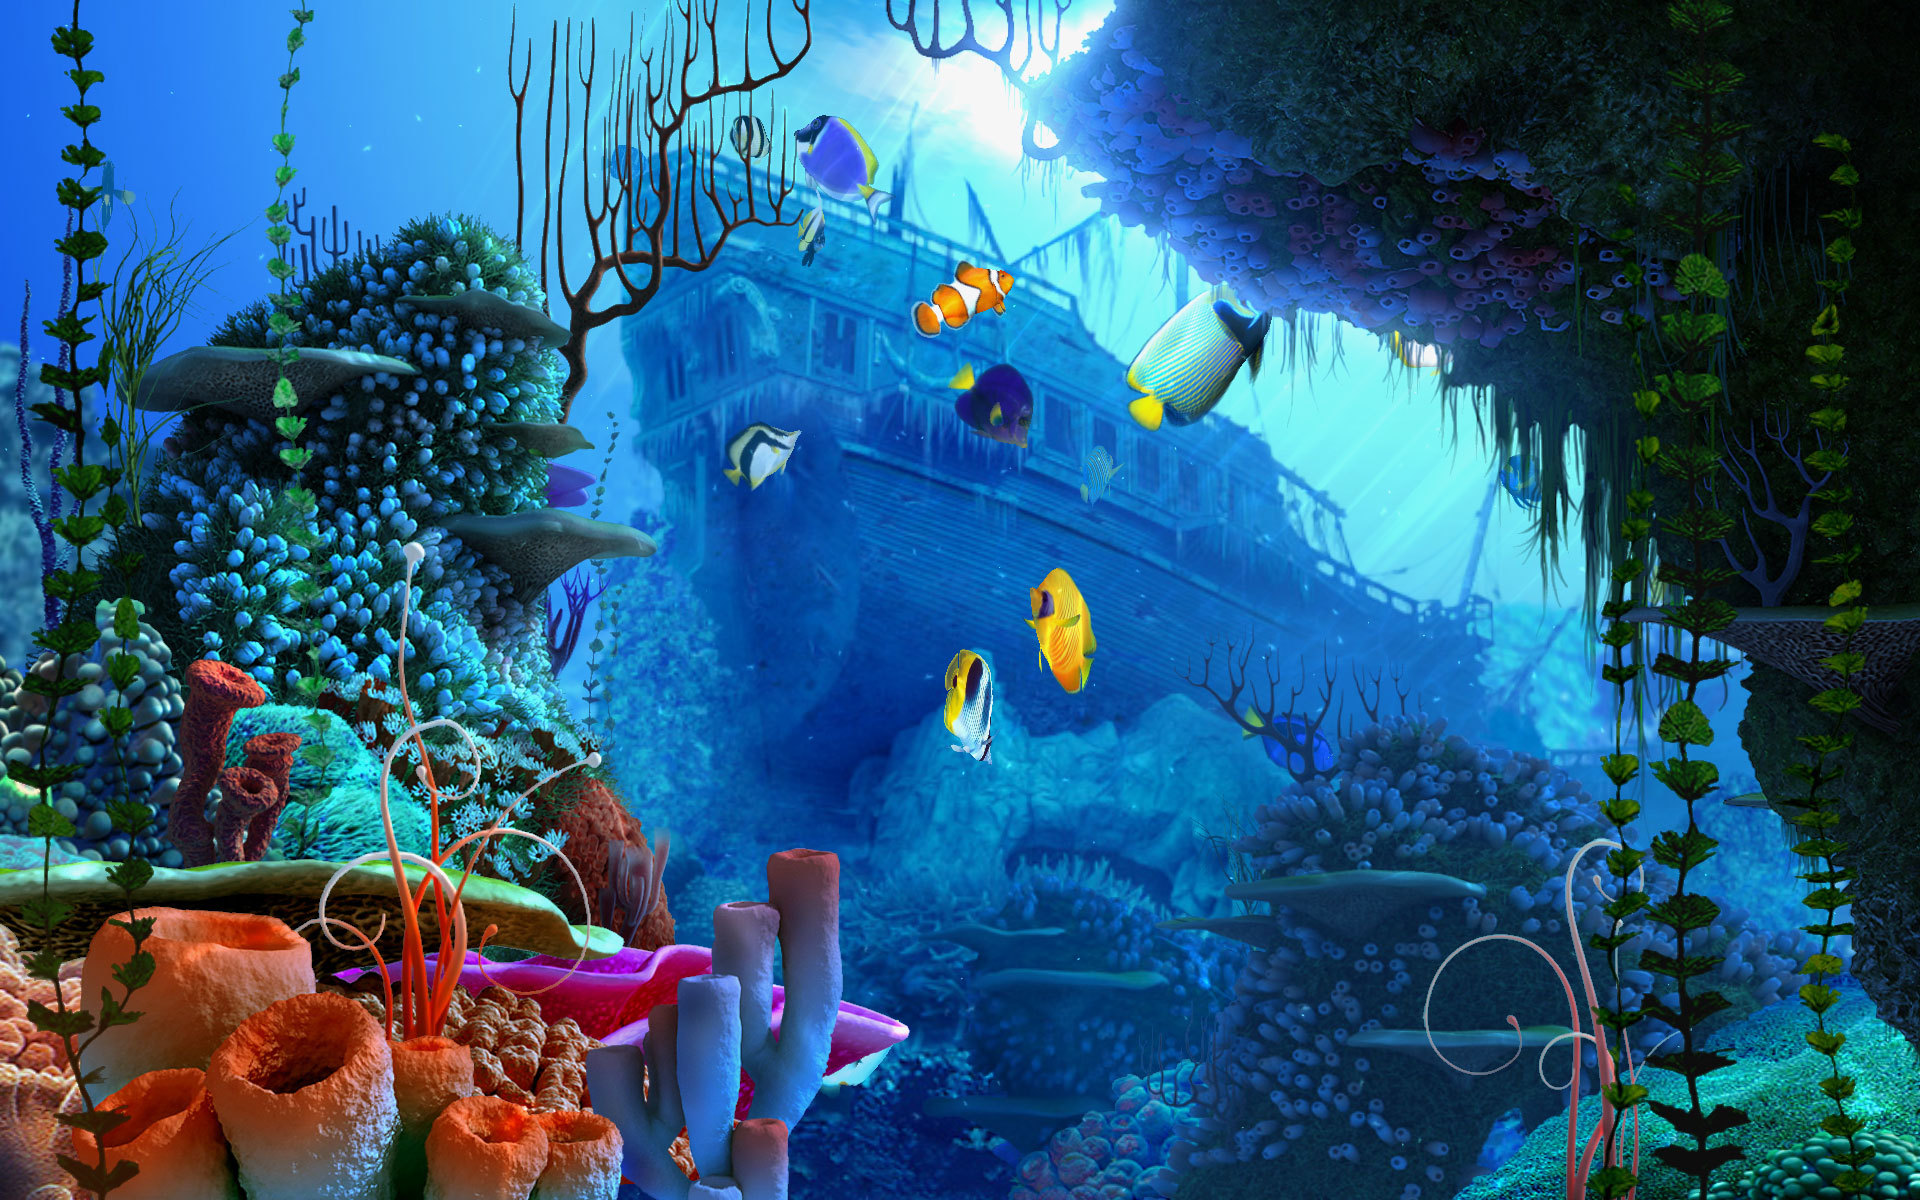 Aquarium screensaver fish tank 1080p hd - Aquarium 3d Screensaver Vollversion Coral Reef Aquarium 3d Screensaver